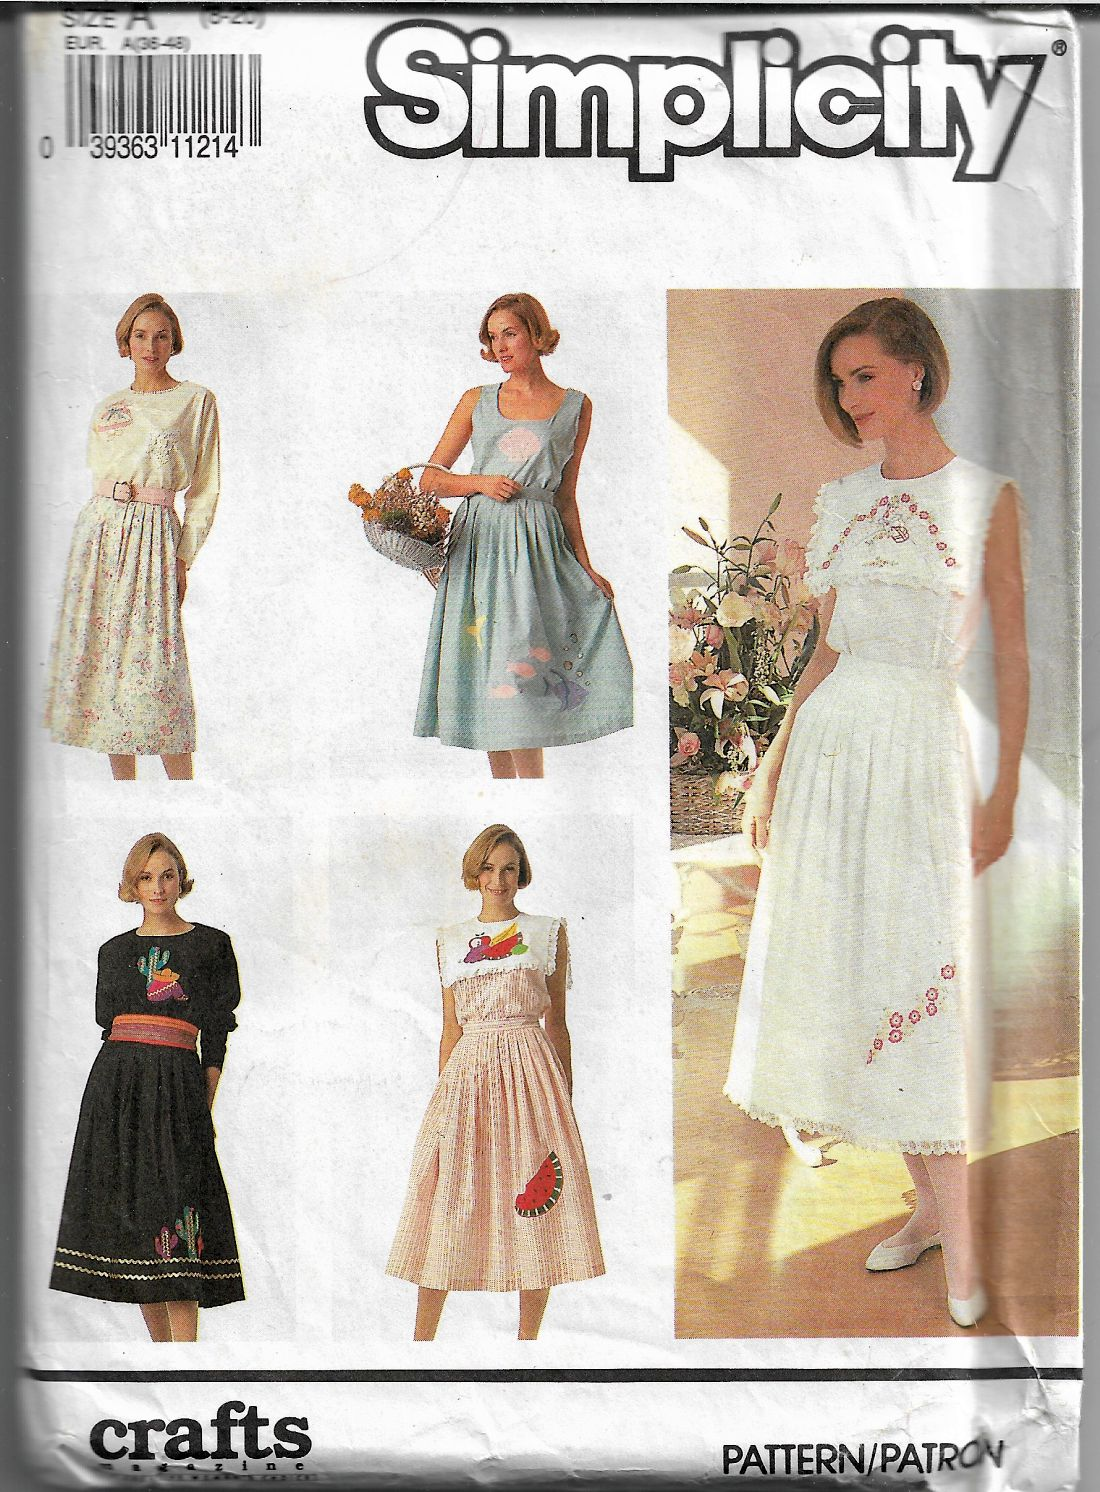 Simplicity 7239 Sewing Pattern Ladies Skirt Tops with Appliques Vintage 1990's - VintageStitching - Vintage Sewing Patterns